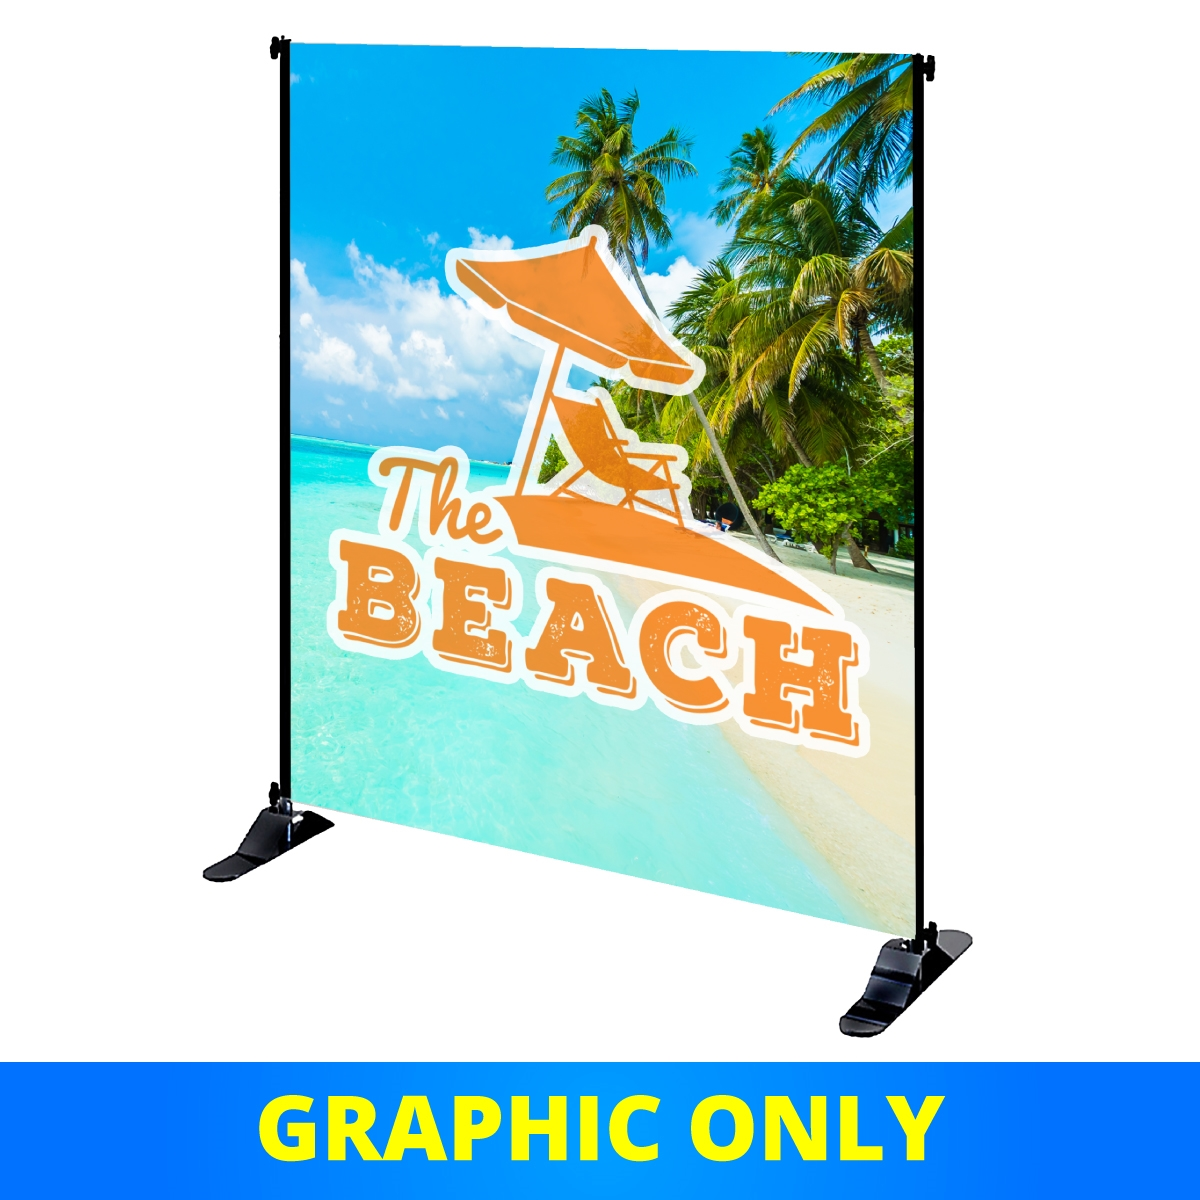 Mighty Banner Display - 6'W x 8' H Fabric Graphic Only